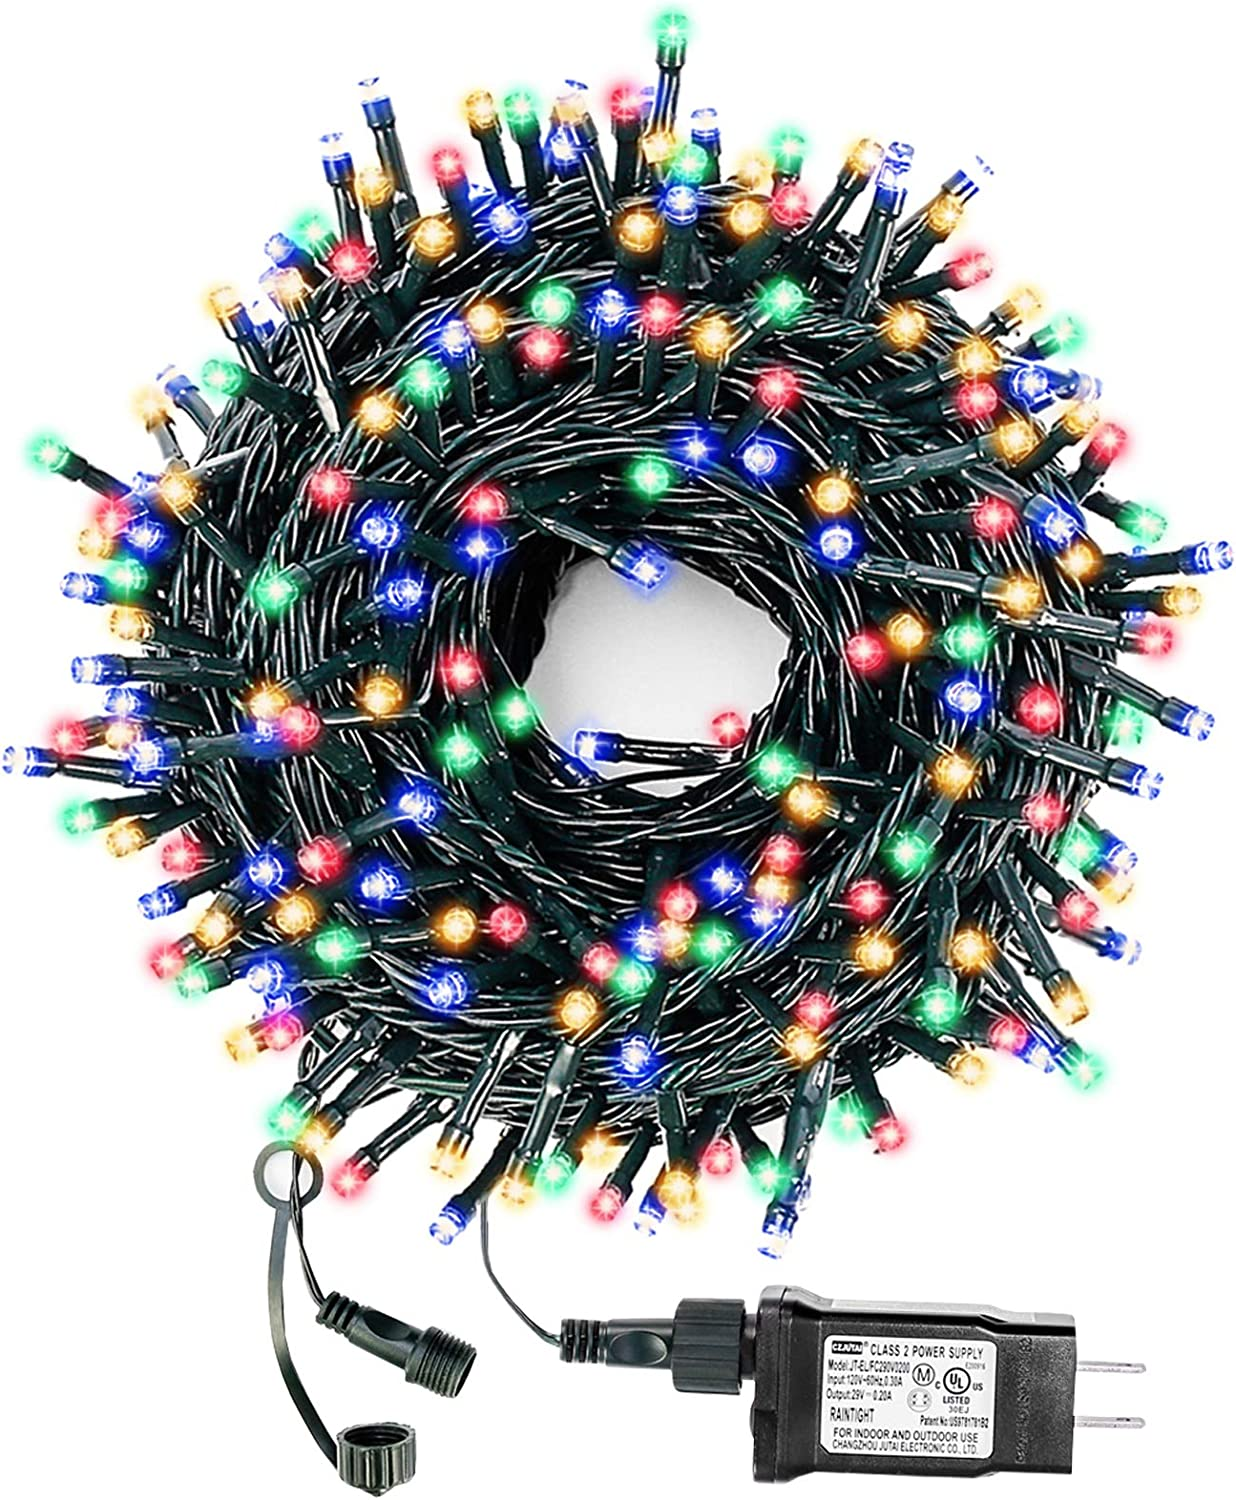 Decute Multi-Color Christmas String Lights Waterproof 300LED 105FT UL Certified with End-to-End Plug 8 Modes, Outdoor Indoor Starry Fairy Lights for Christmas Tree Patio Garden Wedding Party Decor